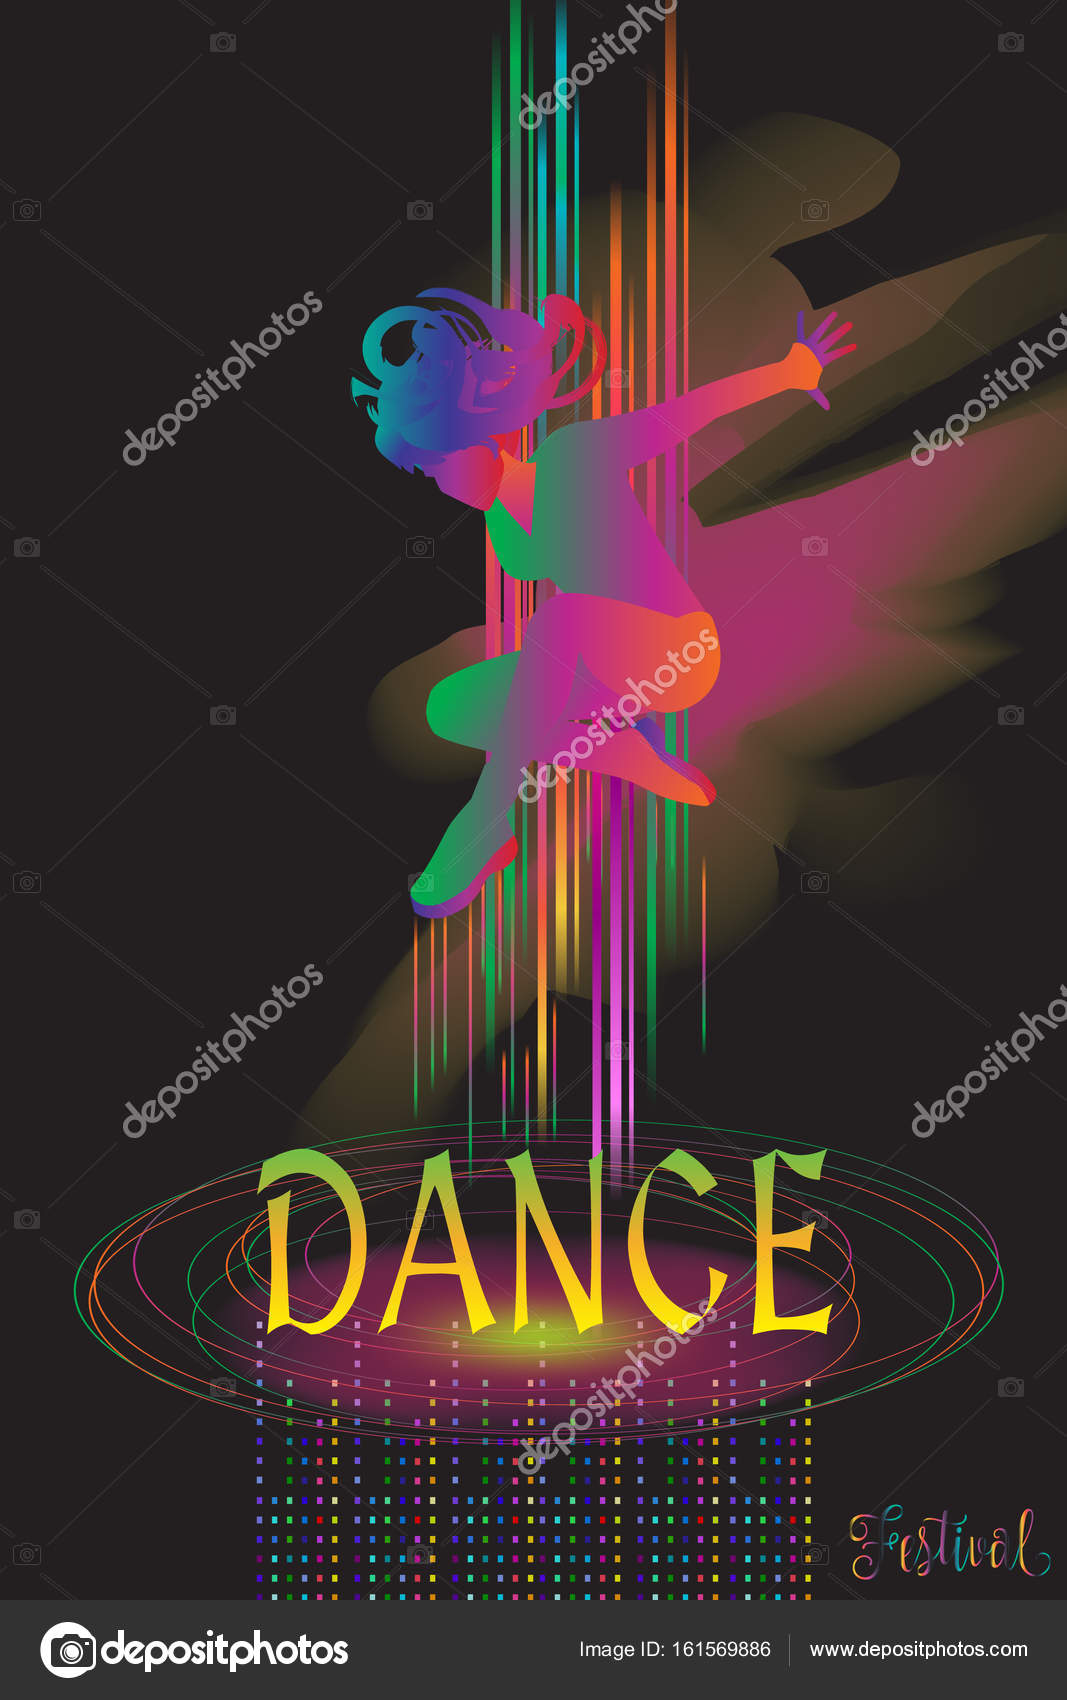 Dancer Woman Poster Dance Electronic Music Modern Dance Music Festival Disco Night Club Invitation Girl Silhouette